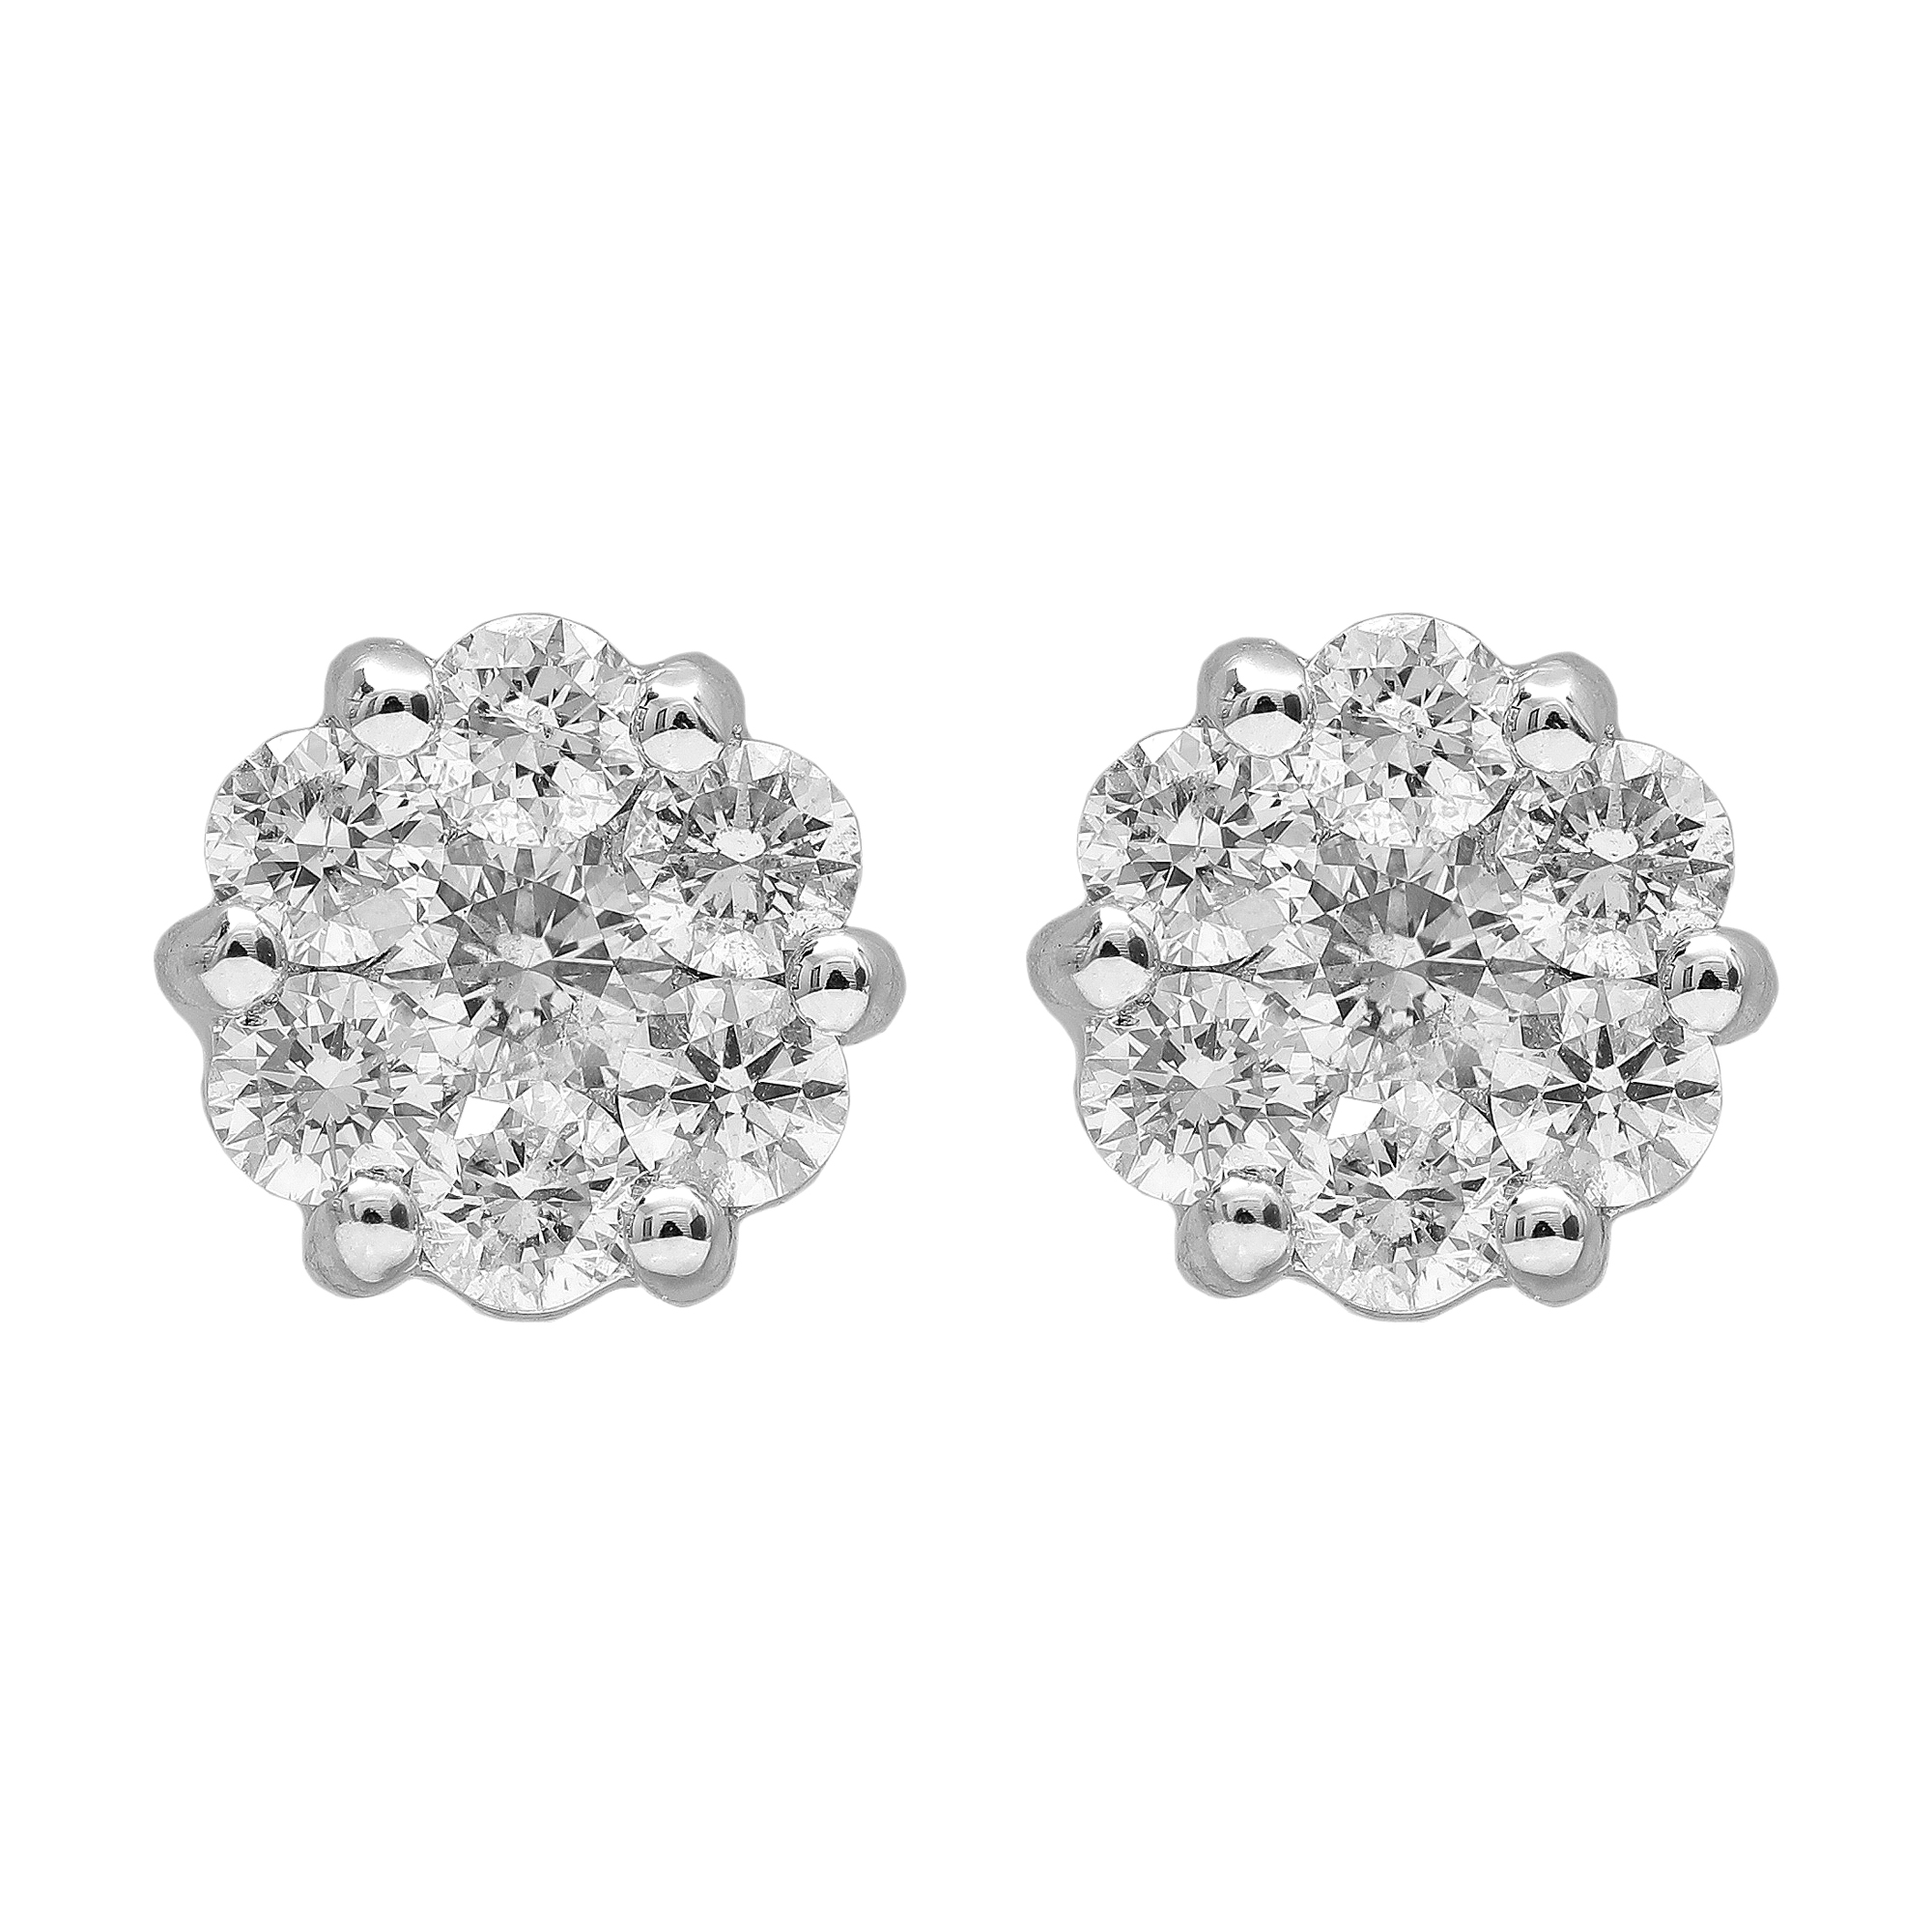 Fiorlini Earring PSE0003